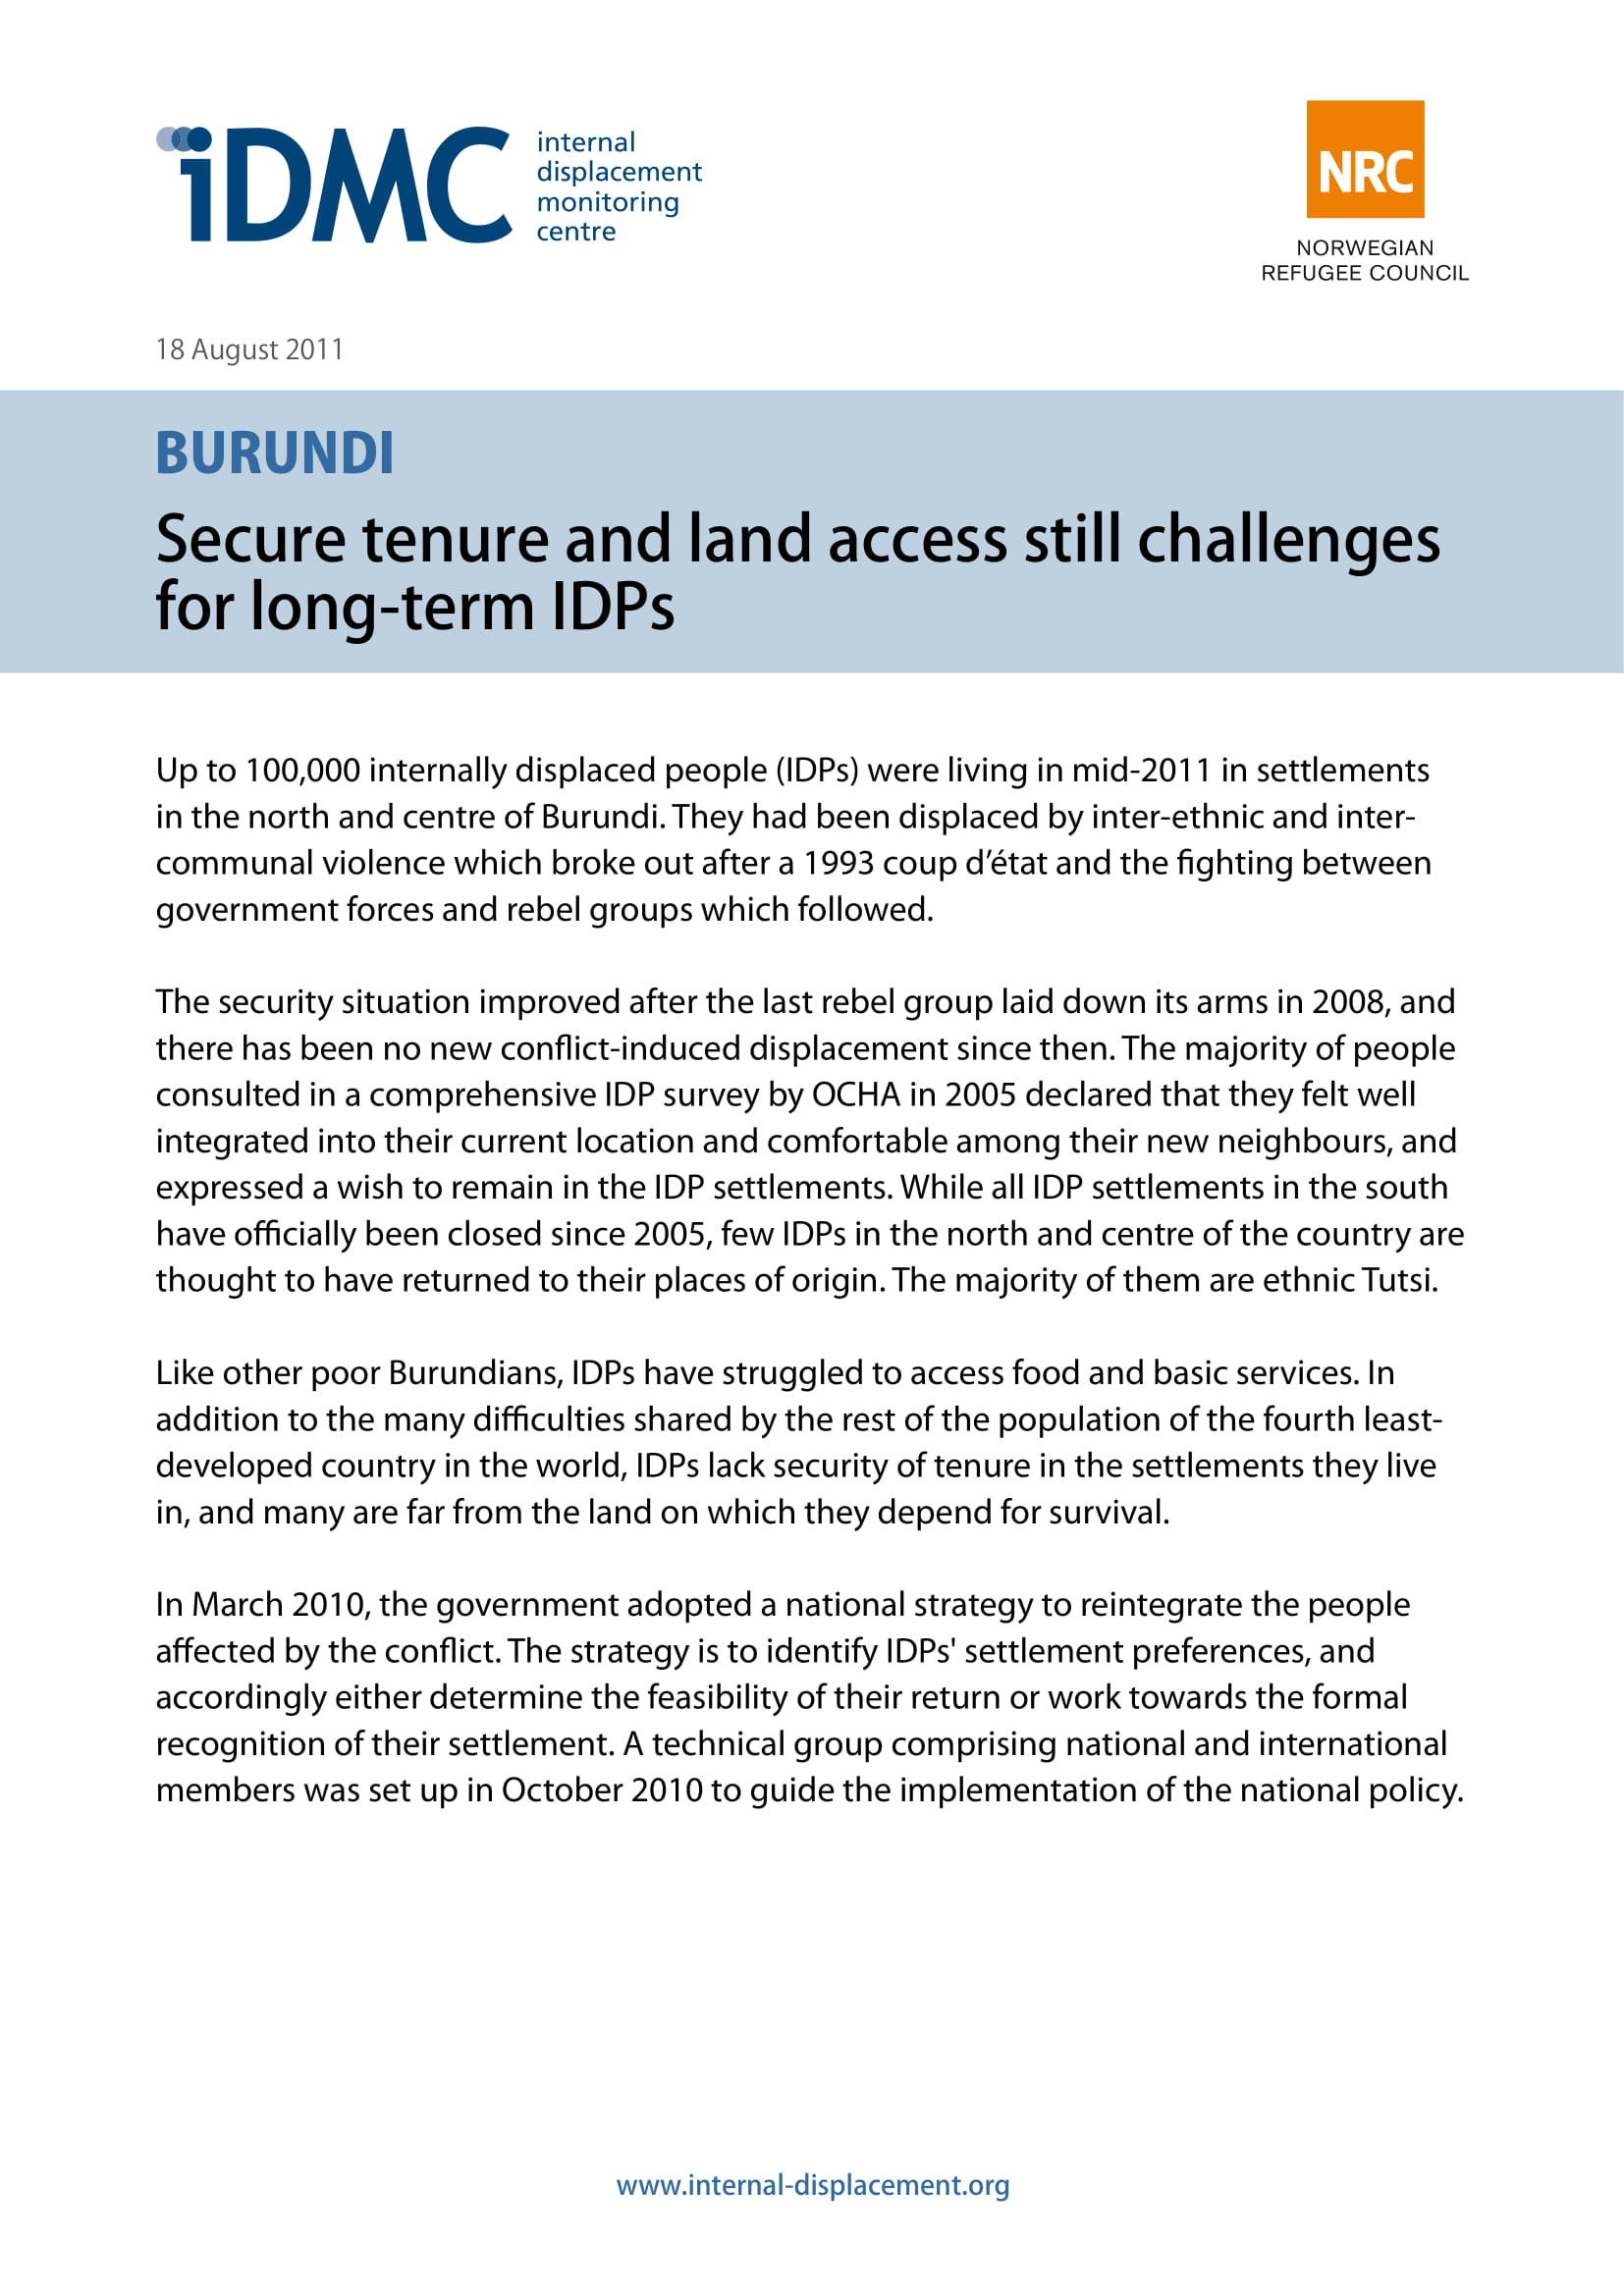 Burundi: Secure tenure and land access still challenges for long-term IDPs